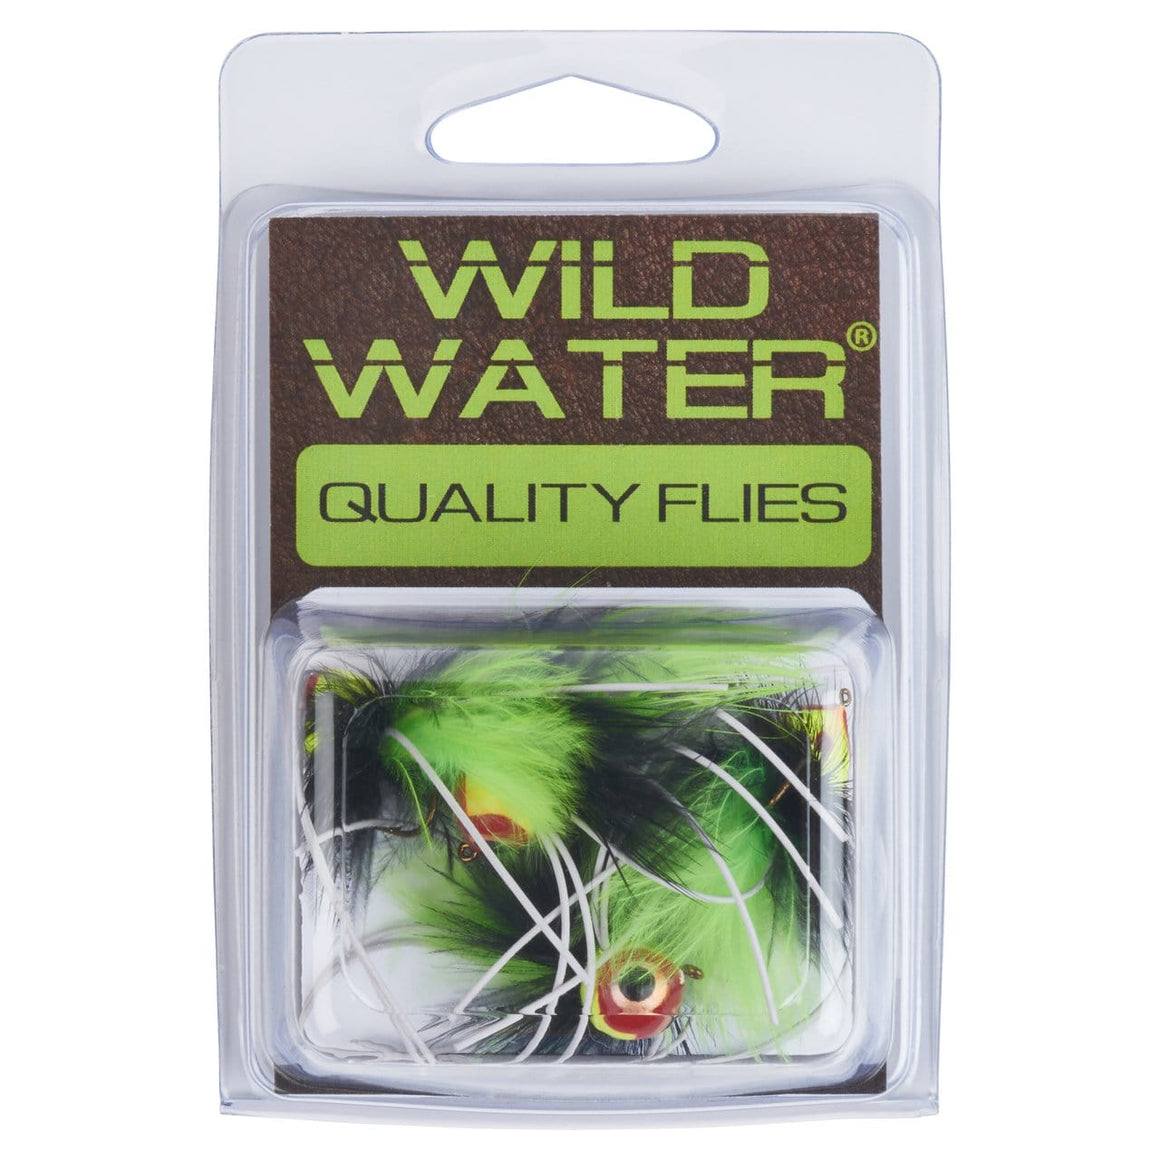 Wild Water Chartreuse and Black Rollie Pollie Popper by Pultz Poppers, Size 8, Qty. 4